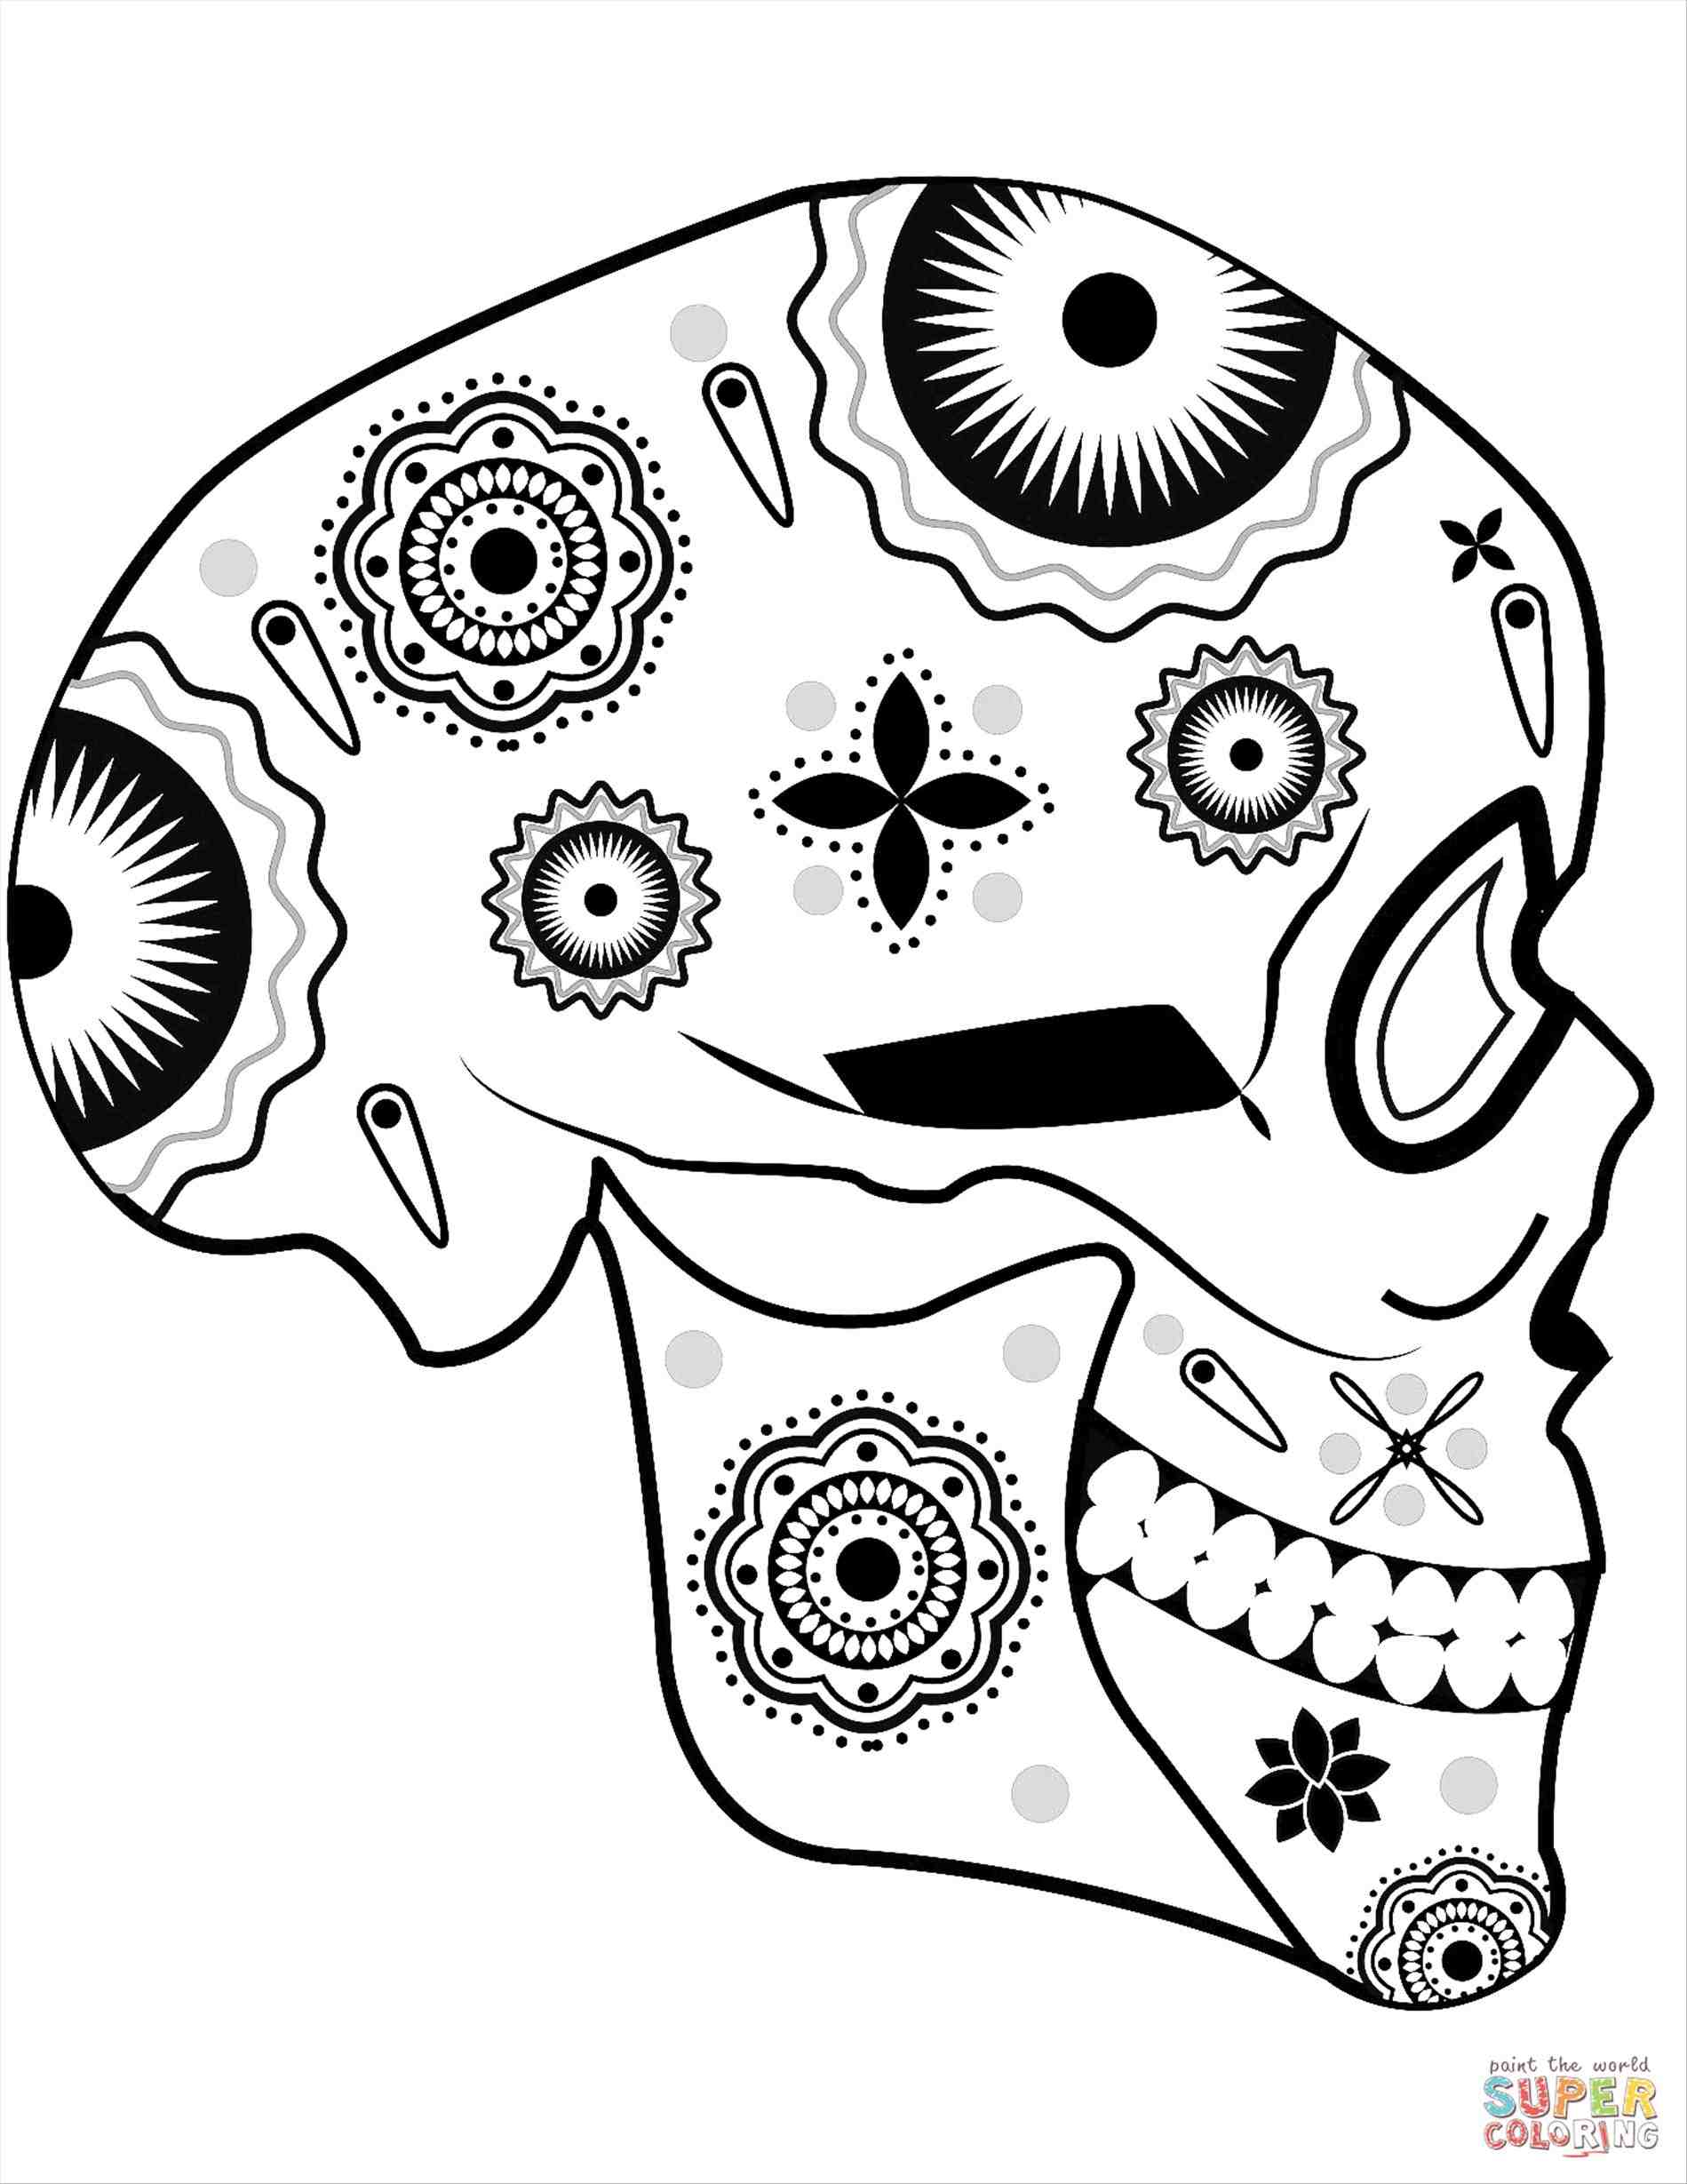 1899x2458 Download Image Creatinu Sugar Skull Drawing Tutorial. Step 5. How